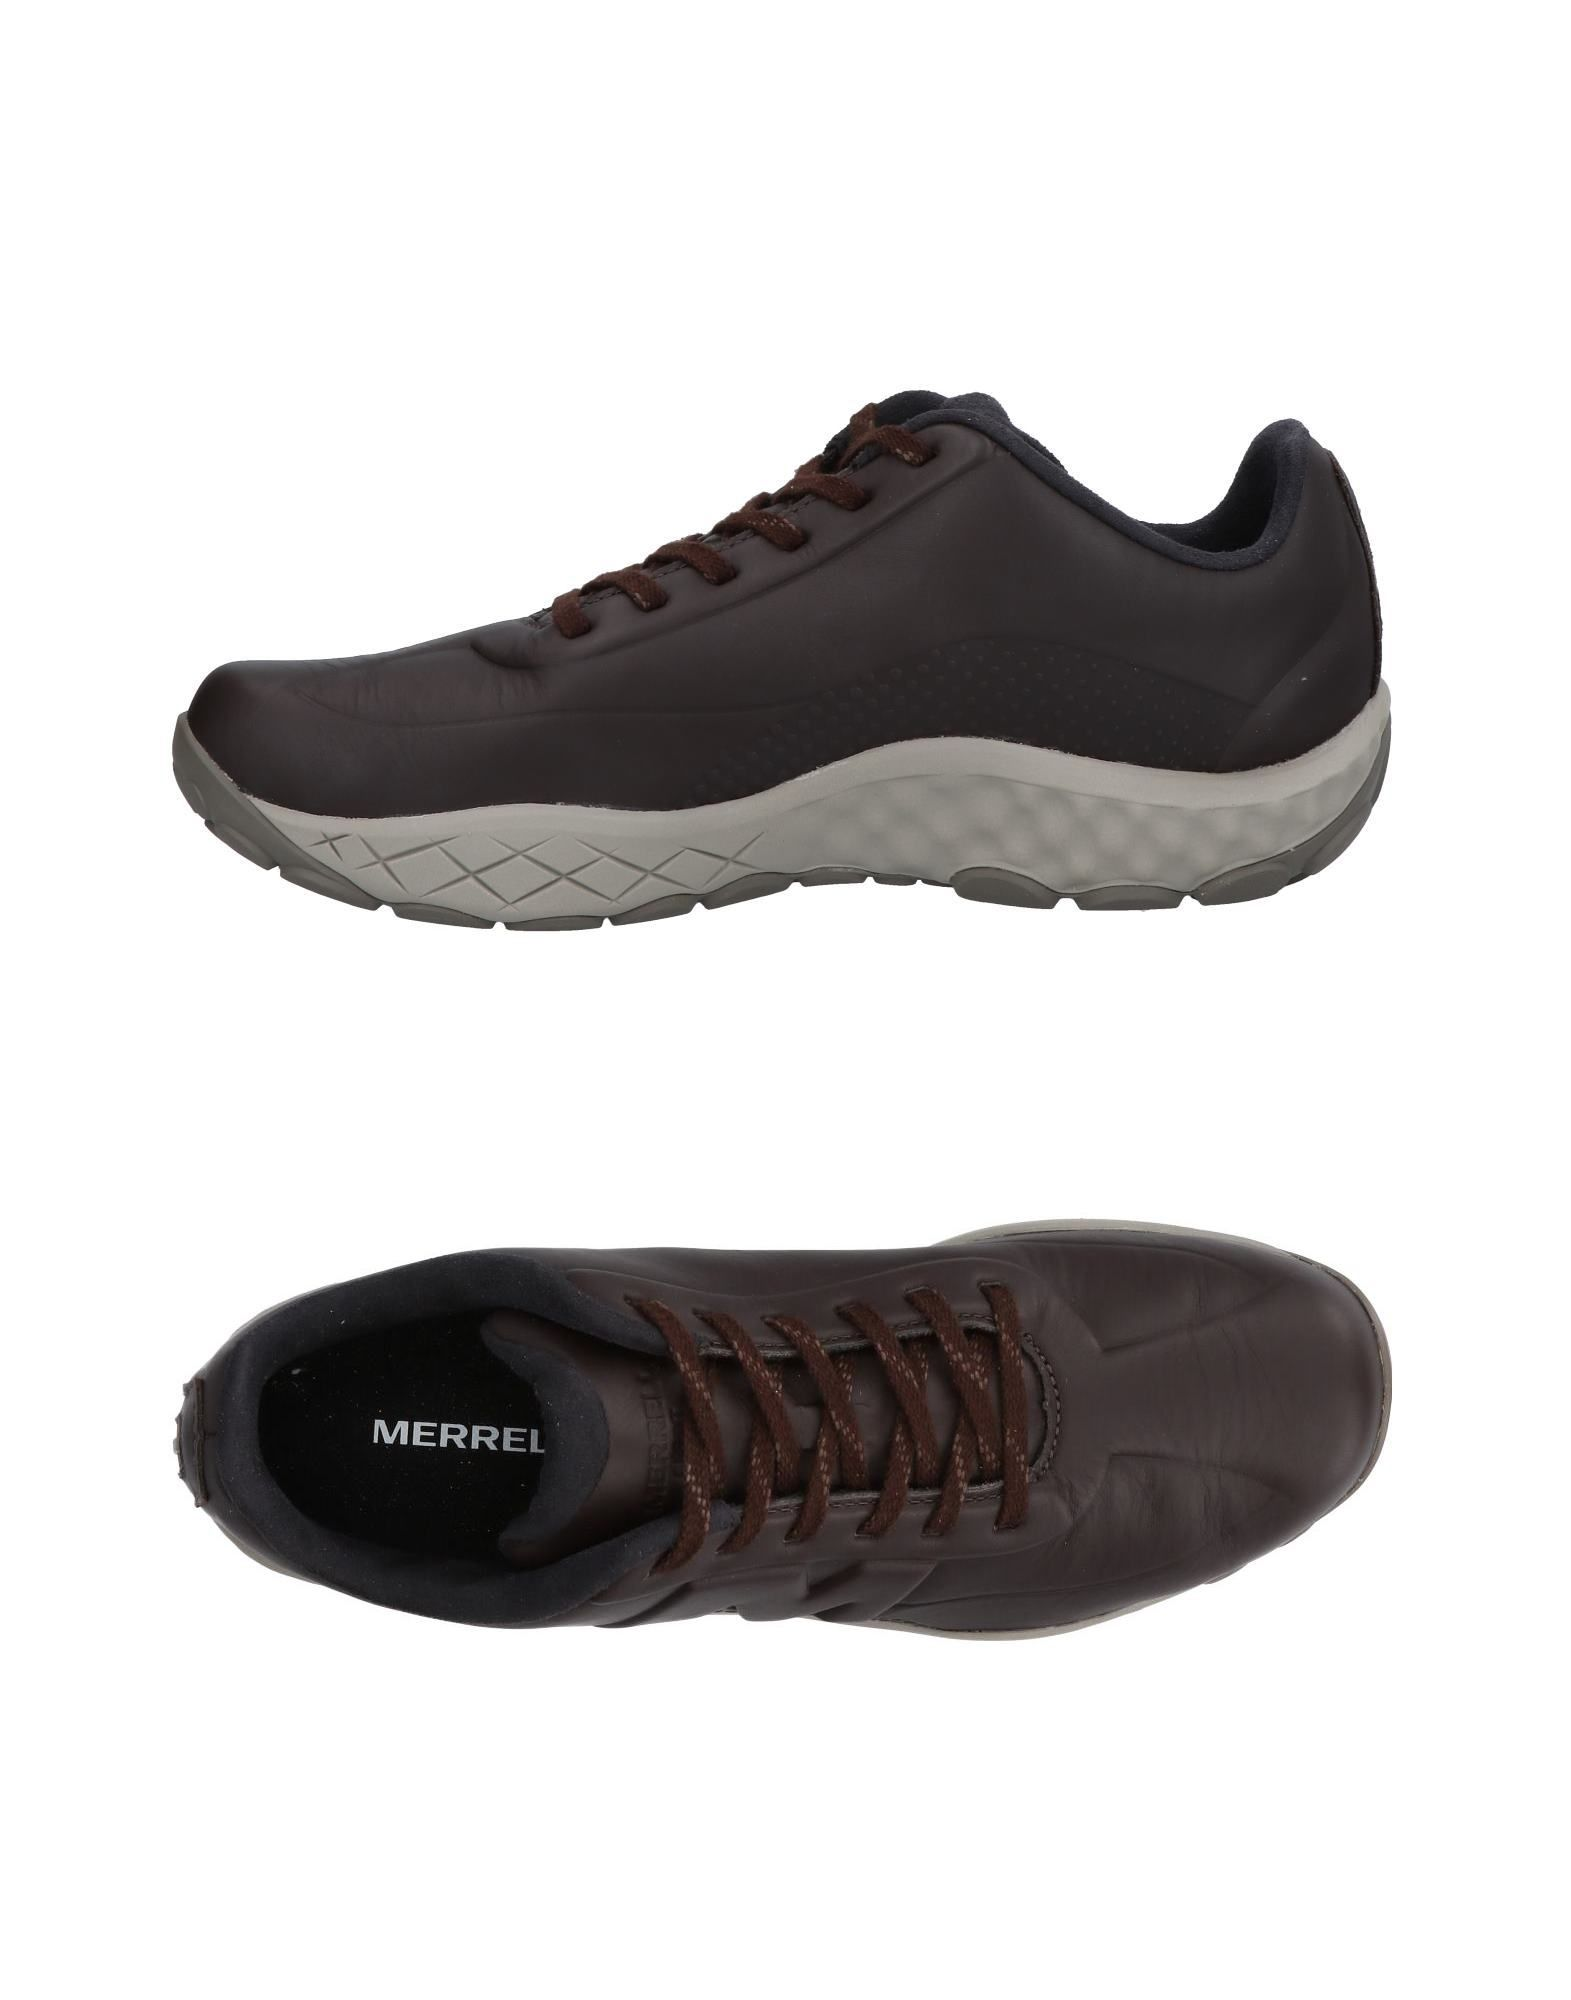 Merrell Sneakers - Men Merrell Sneakers online on 11458887QI  United Kingdom - 11458887QI on bd4758